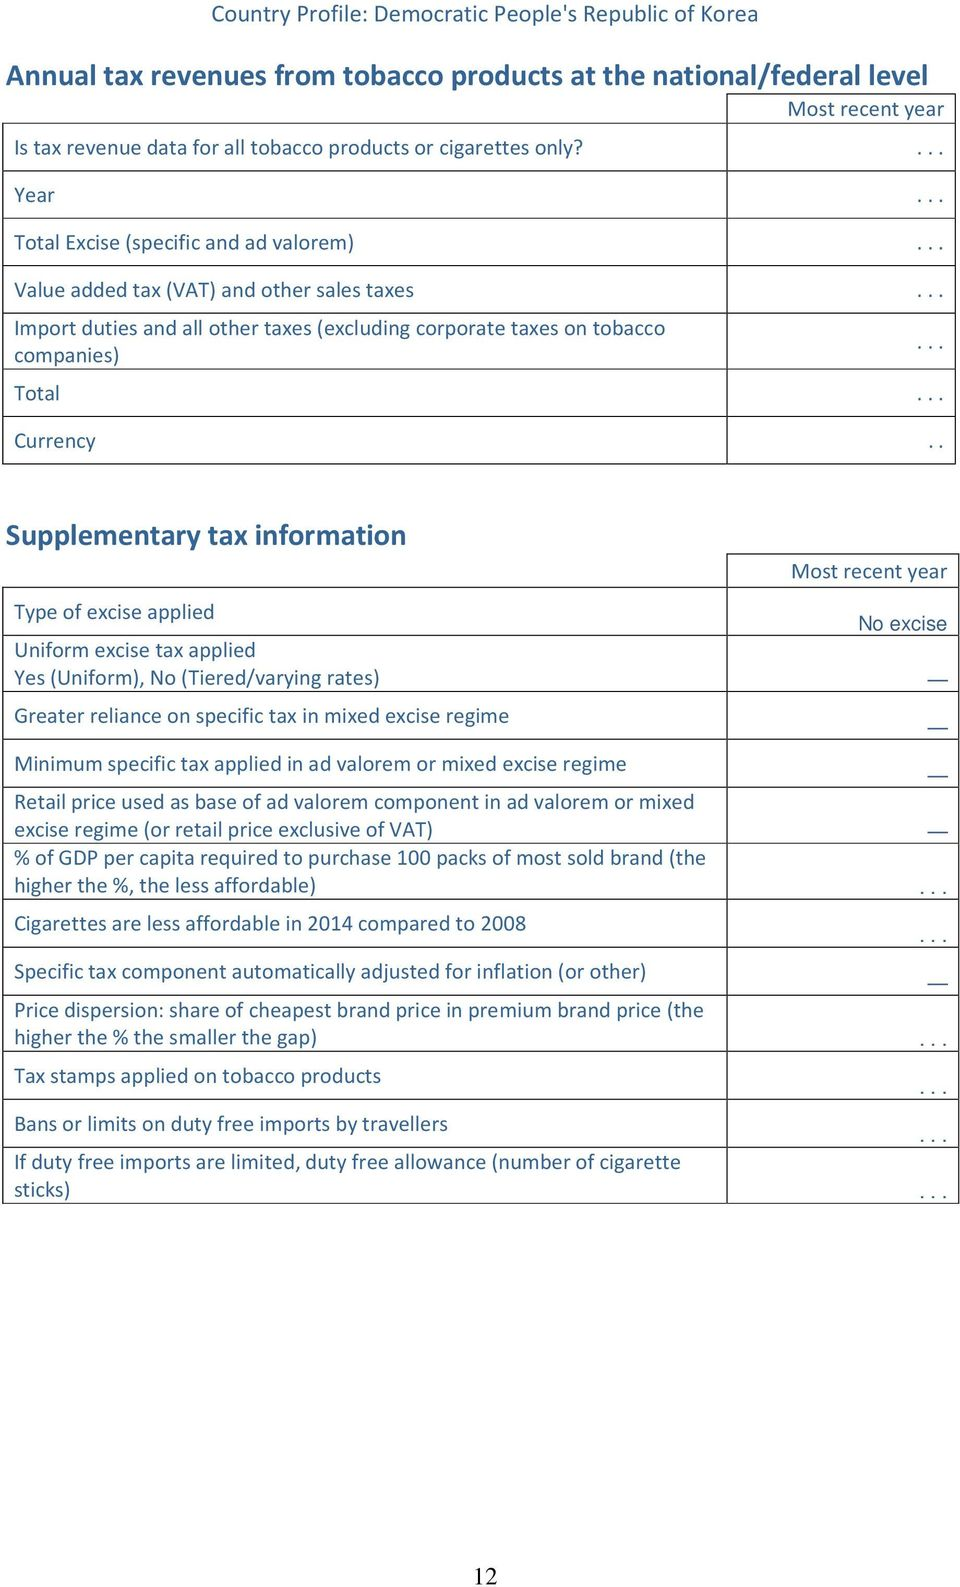 . Supplementary tax information Most recent year Type of excise applied excise Uniform excise tax applied Yes (Uniform), (Tiered/varying rates) Greater reliance on specific tax in mixed excise regime